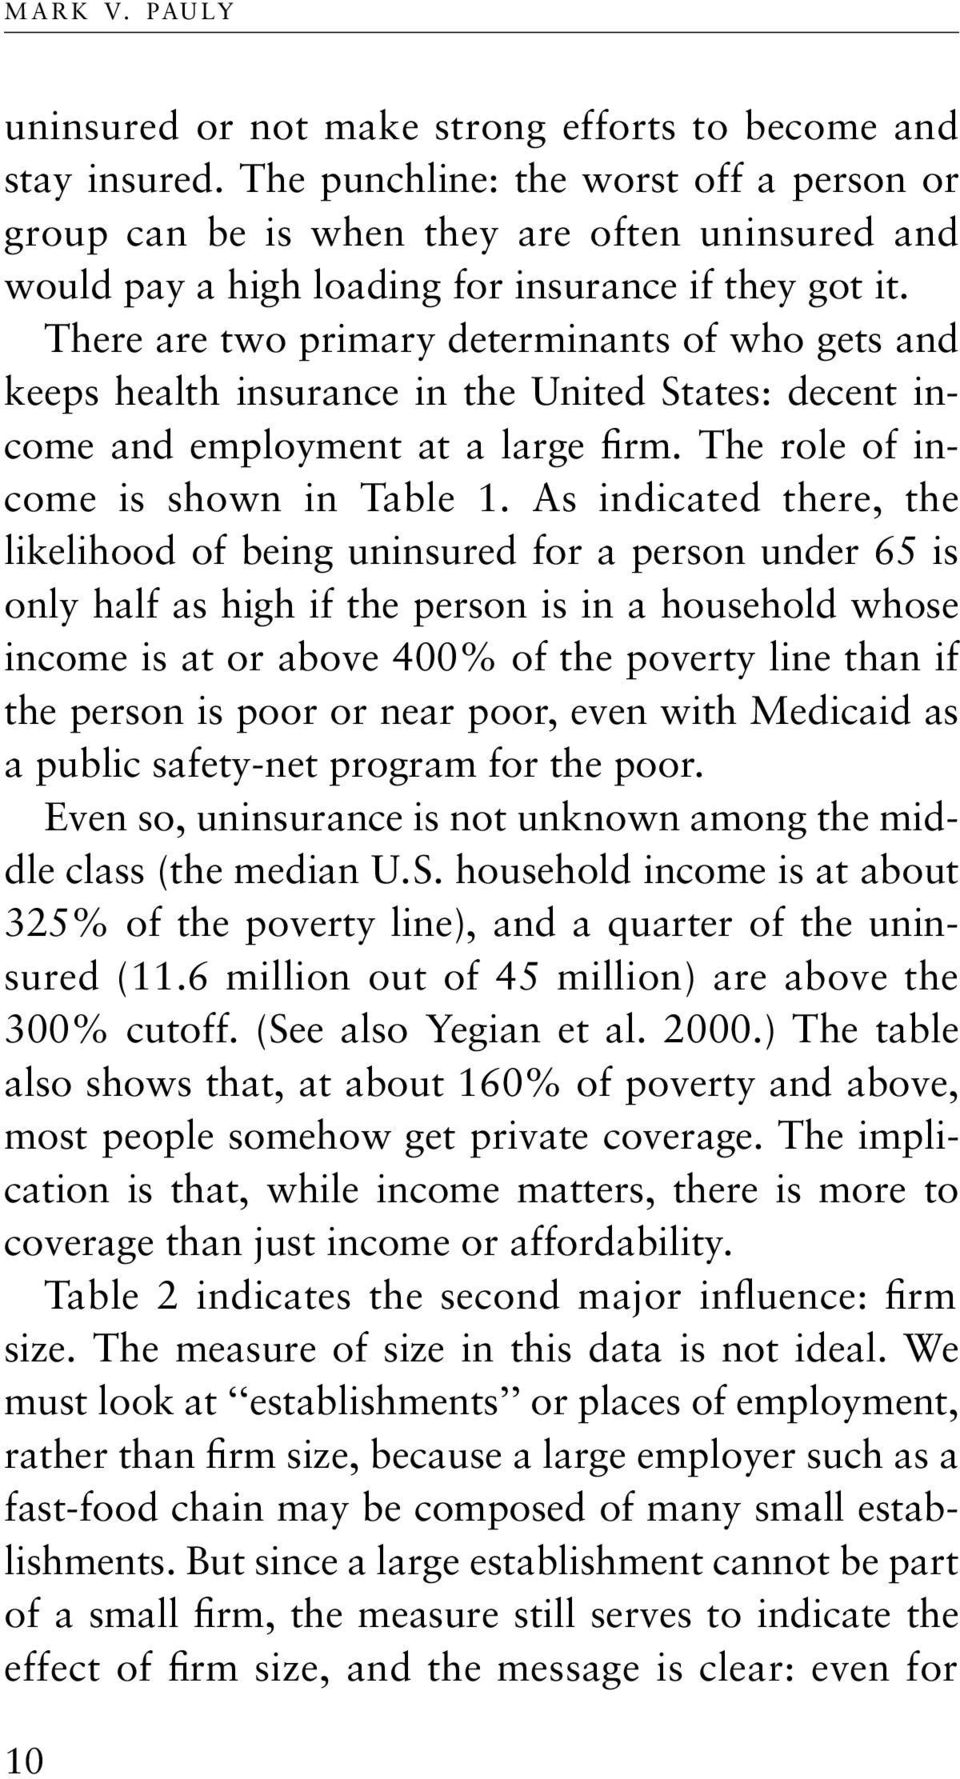 There are two primary determinants of who gets and keeps health insurance in the United States: decent income and employment at a large firm. The role of income is shown in Table 1.